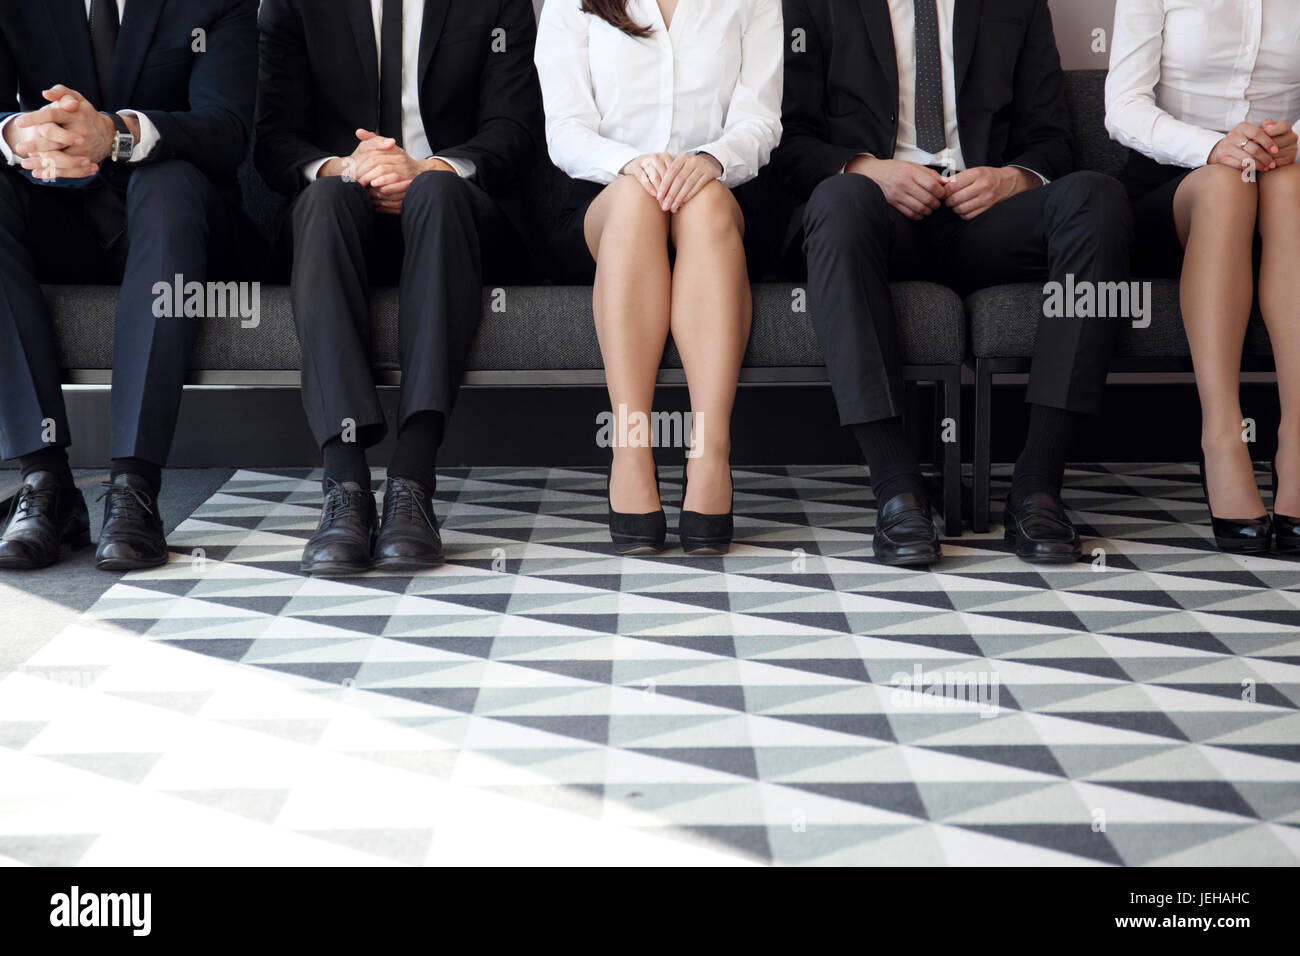 People waiting for job interview sitting on chairs in a row - Stock Image